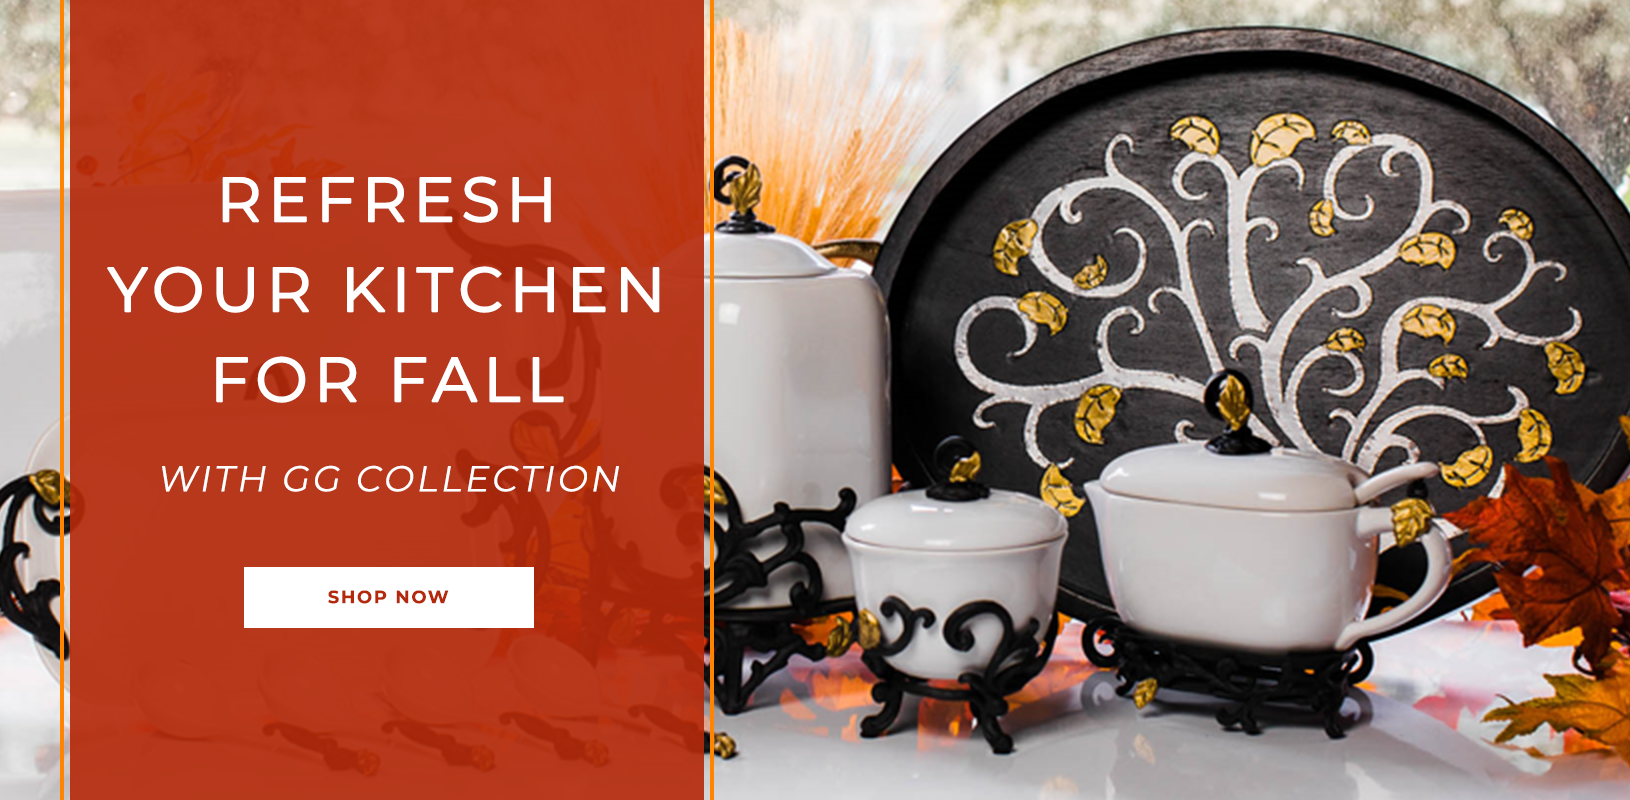 Refresh your kitchen for Fall with GG Collection